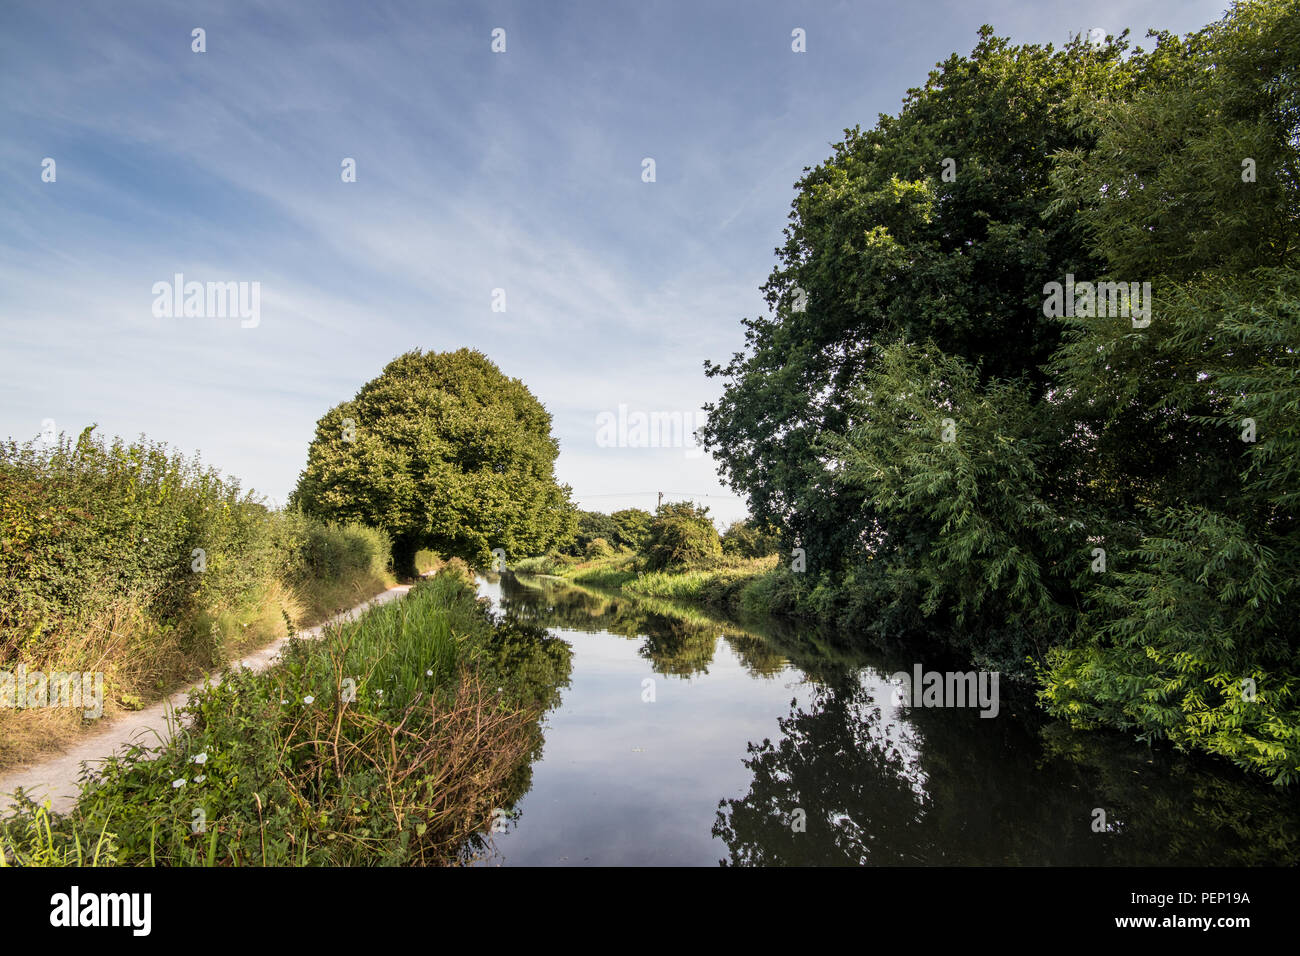 Towpath at Chichester Canal, Chichester, West Sussex, UK - Stock Image